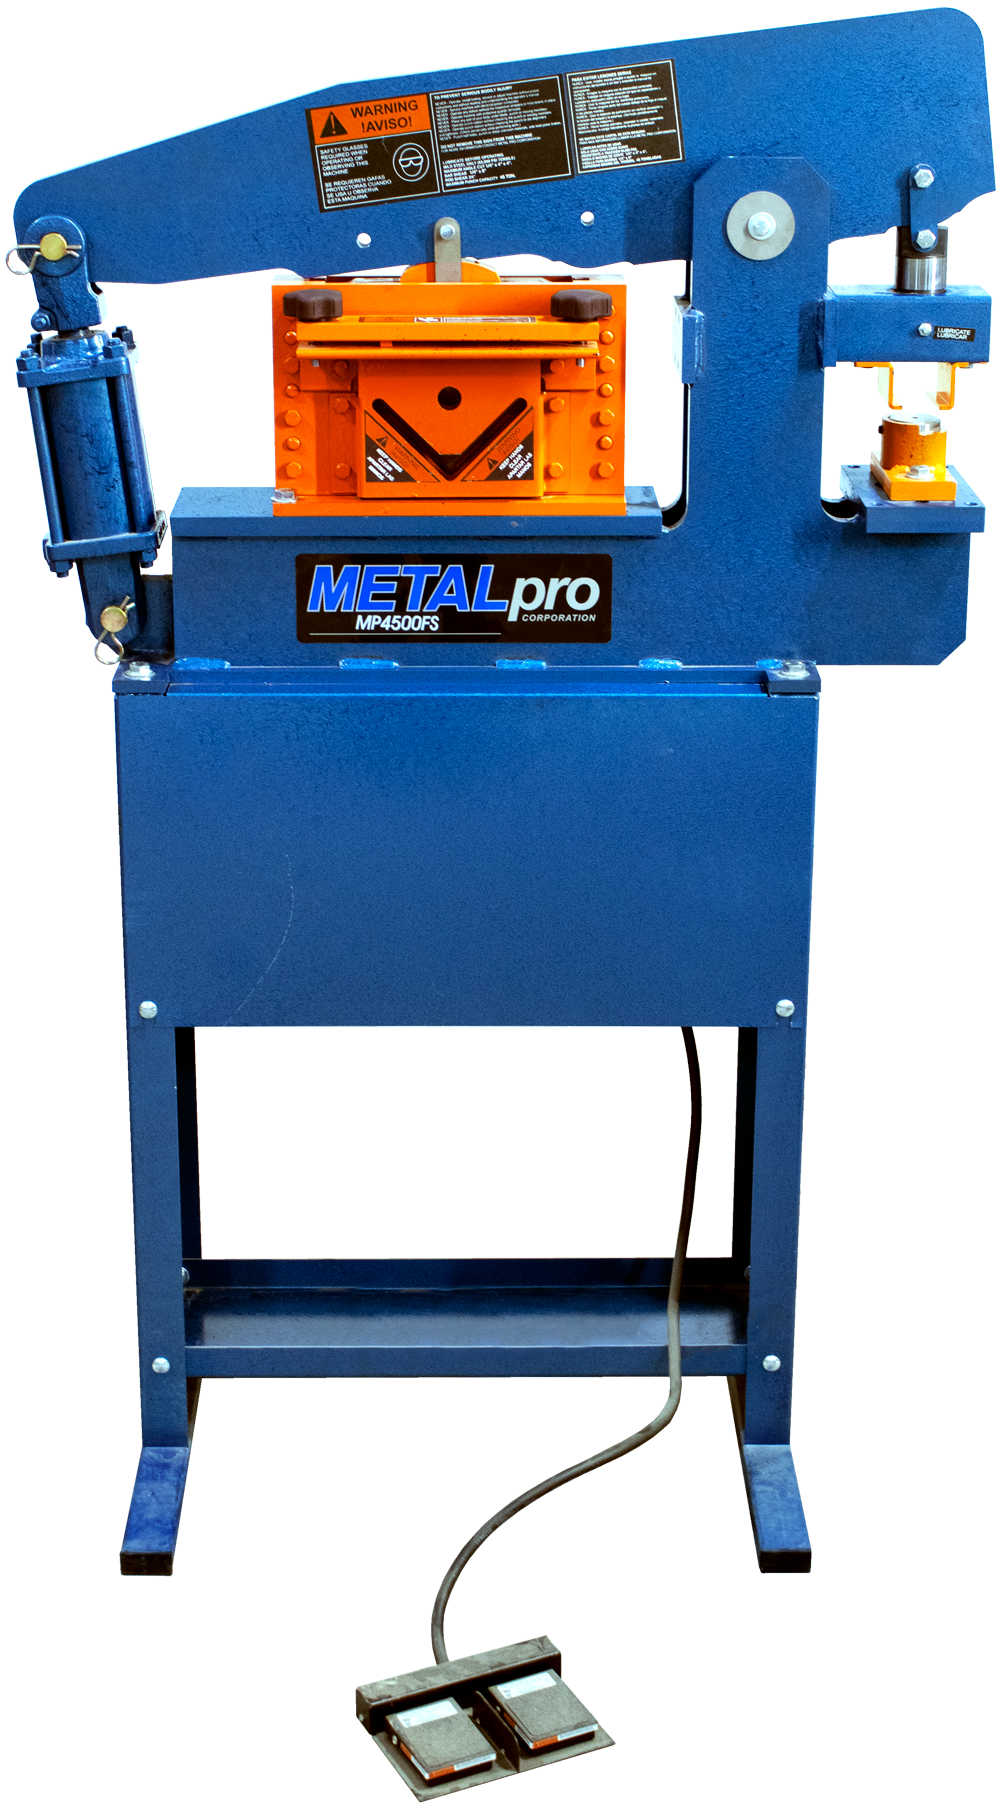 MetalPro 45 Ton ironworker with Footswitch MP4500FS